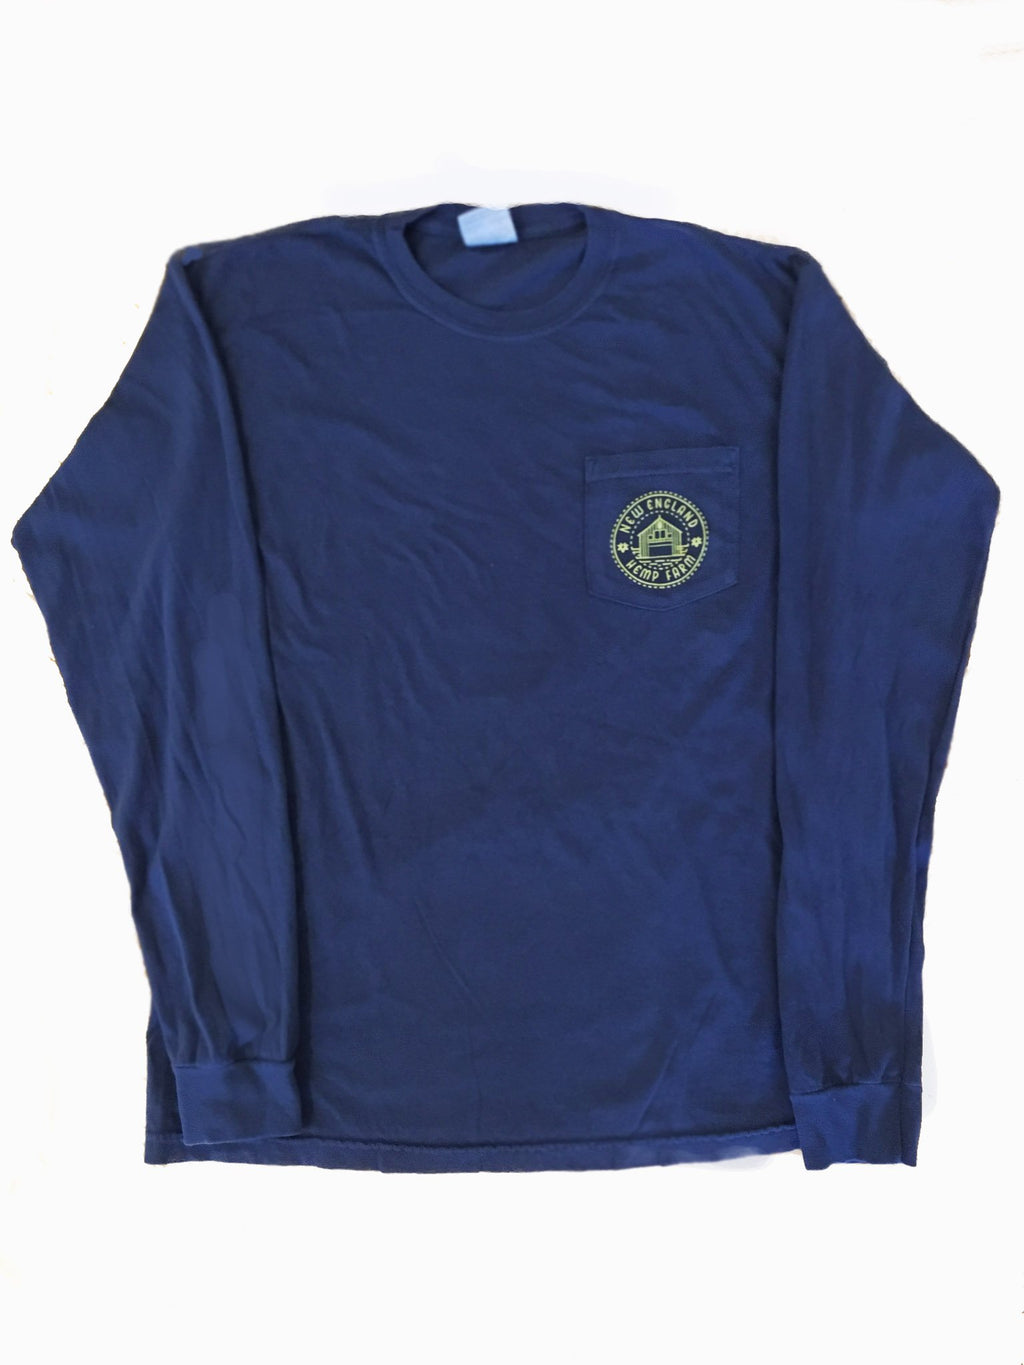 The Navy Long Sleeve Flower Tee